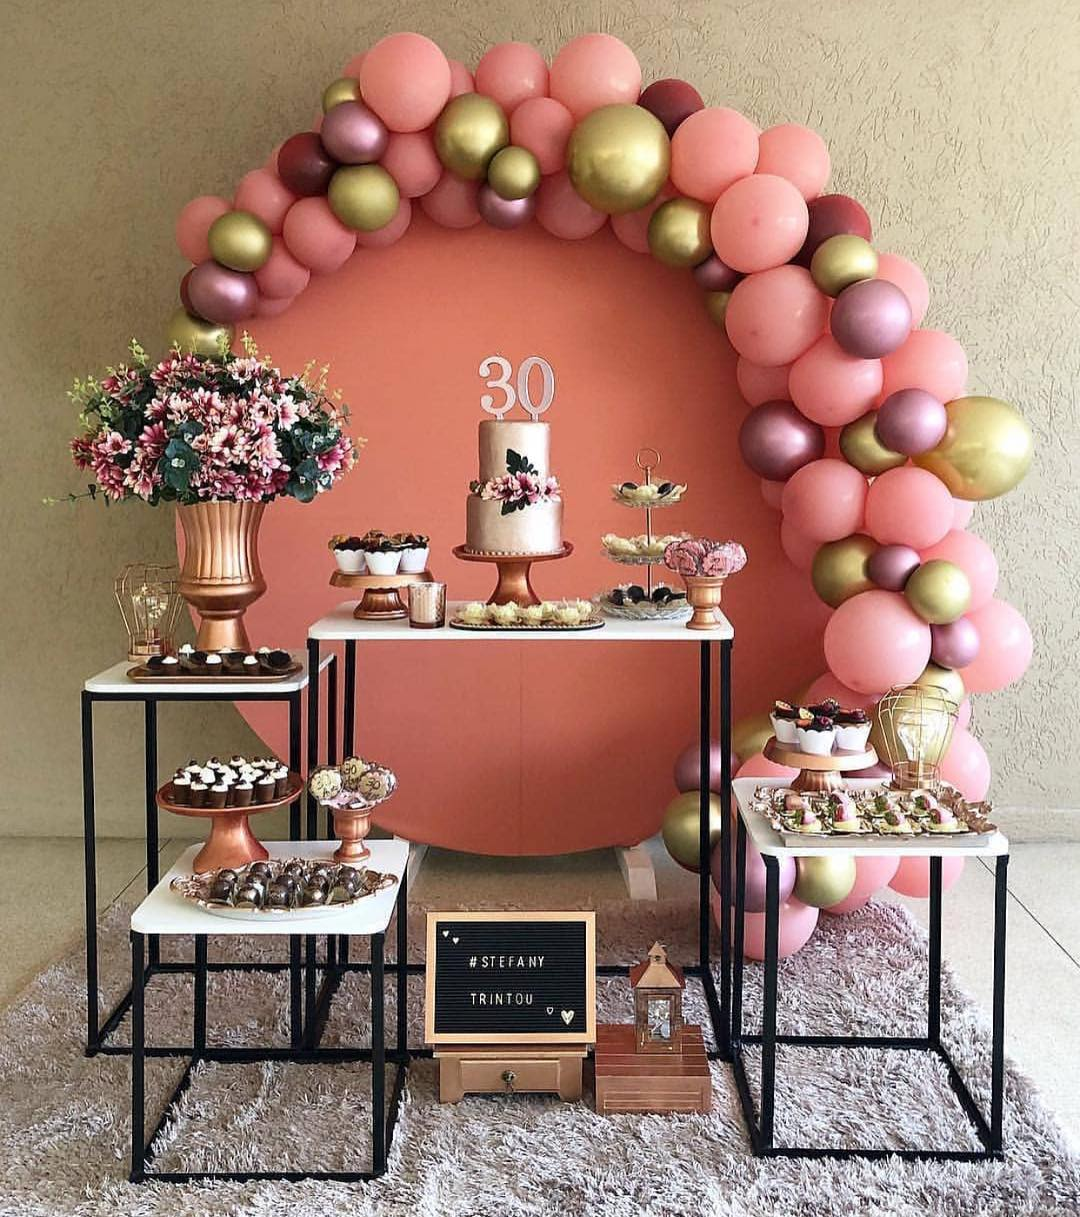 30-best-baby-shower-ideas-with-you-2019